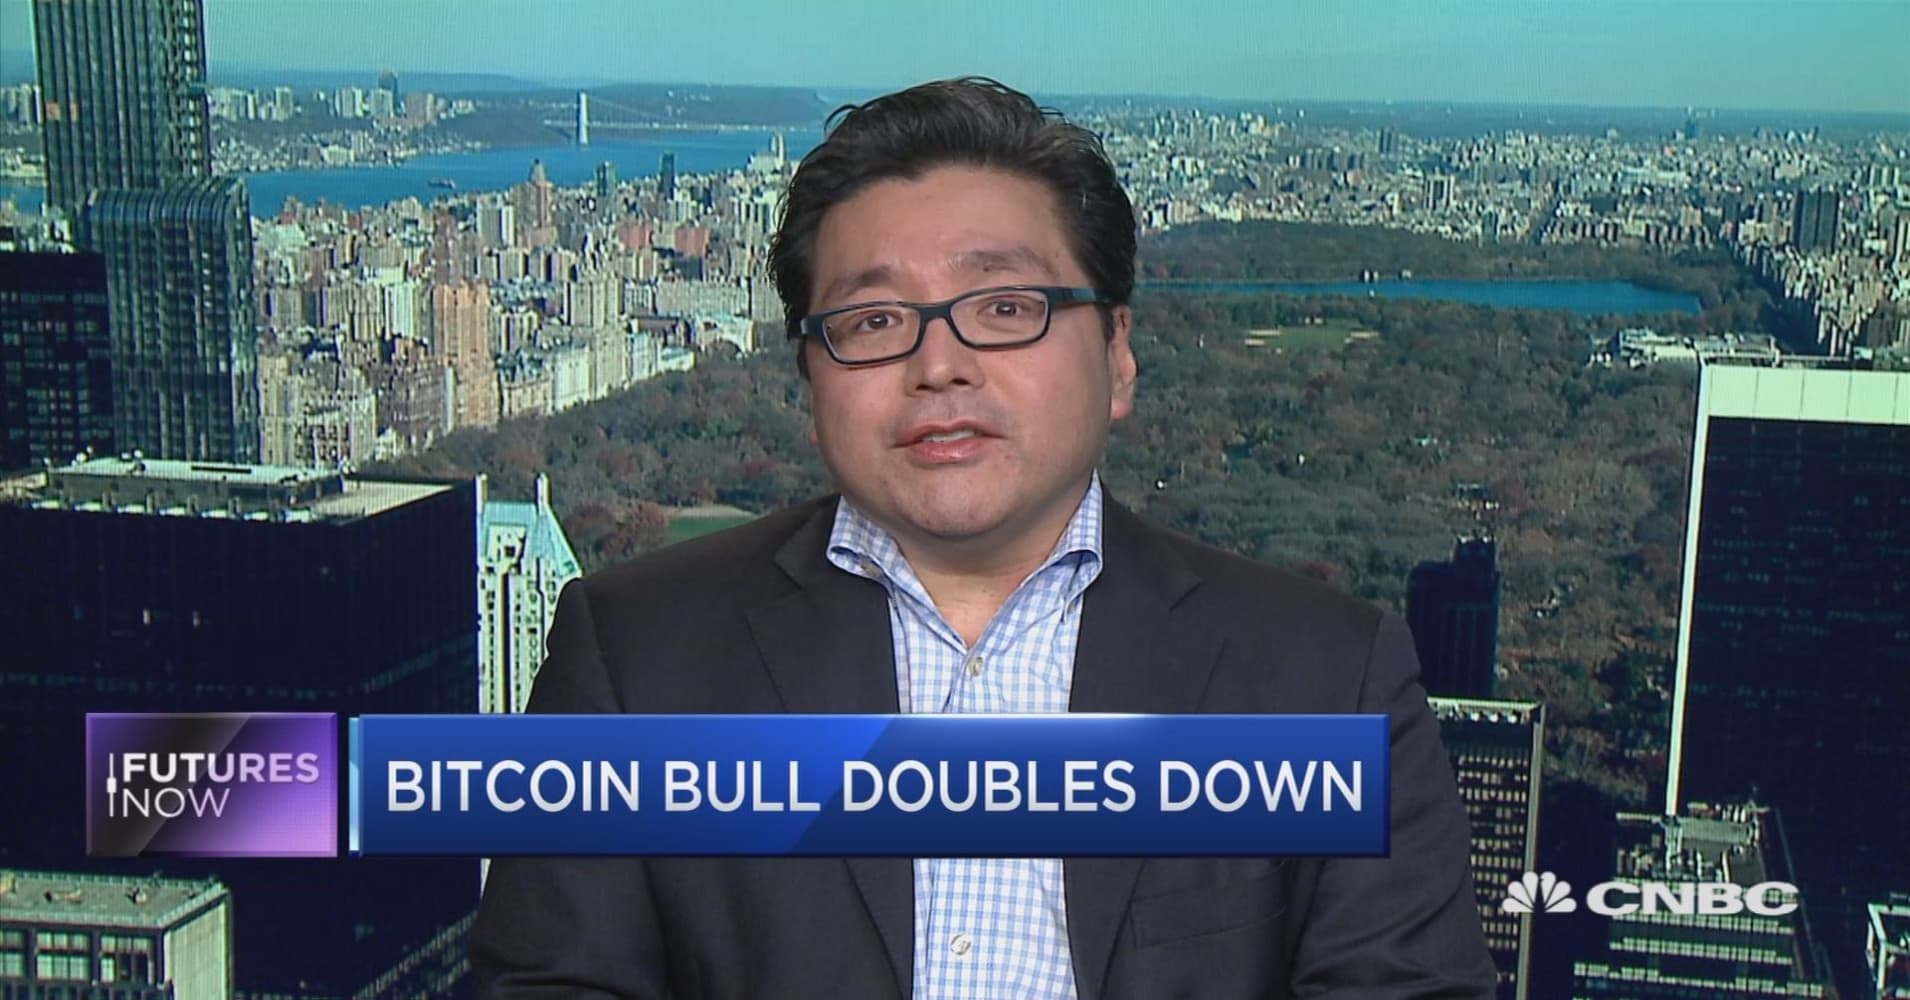 2019 will be year bitcoin rockets higher, says Fundstrat's Tom Lee